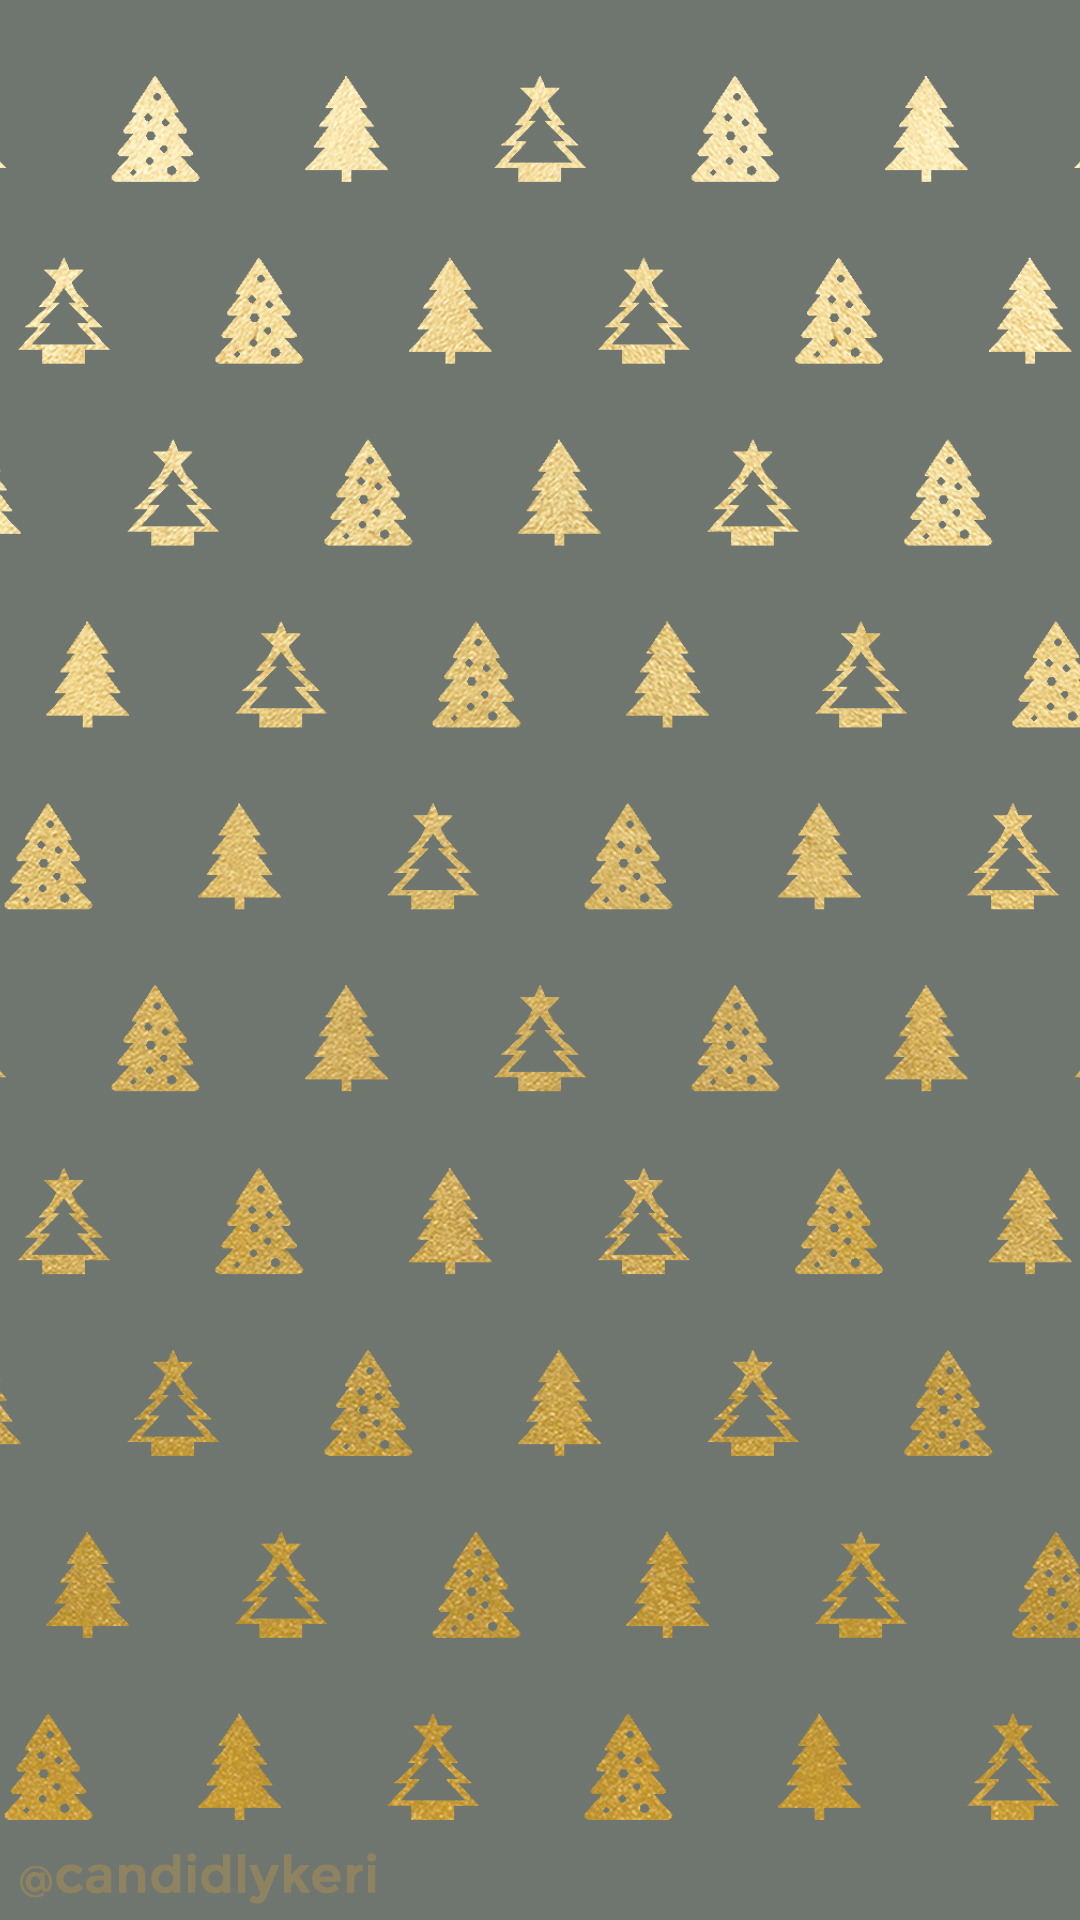 Christmas-tree-gold-foil-green-background-you-can-download-for-free-on-the-blog-For-any-d-wallpaper-wp3403904